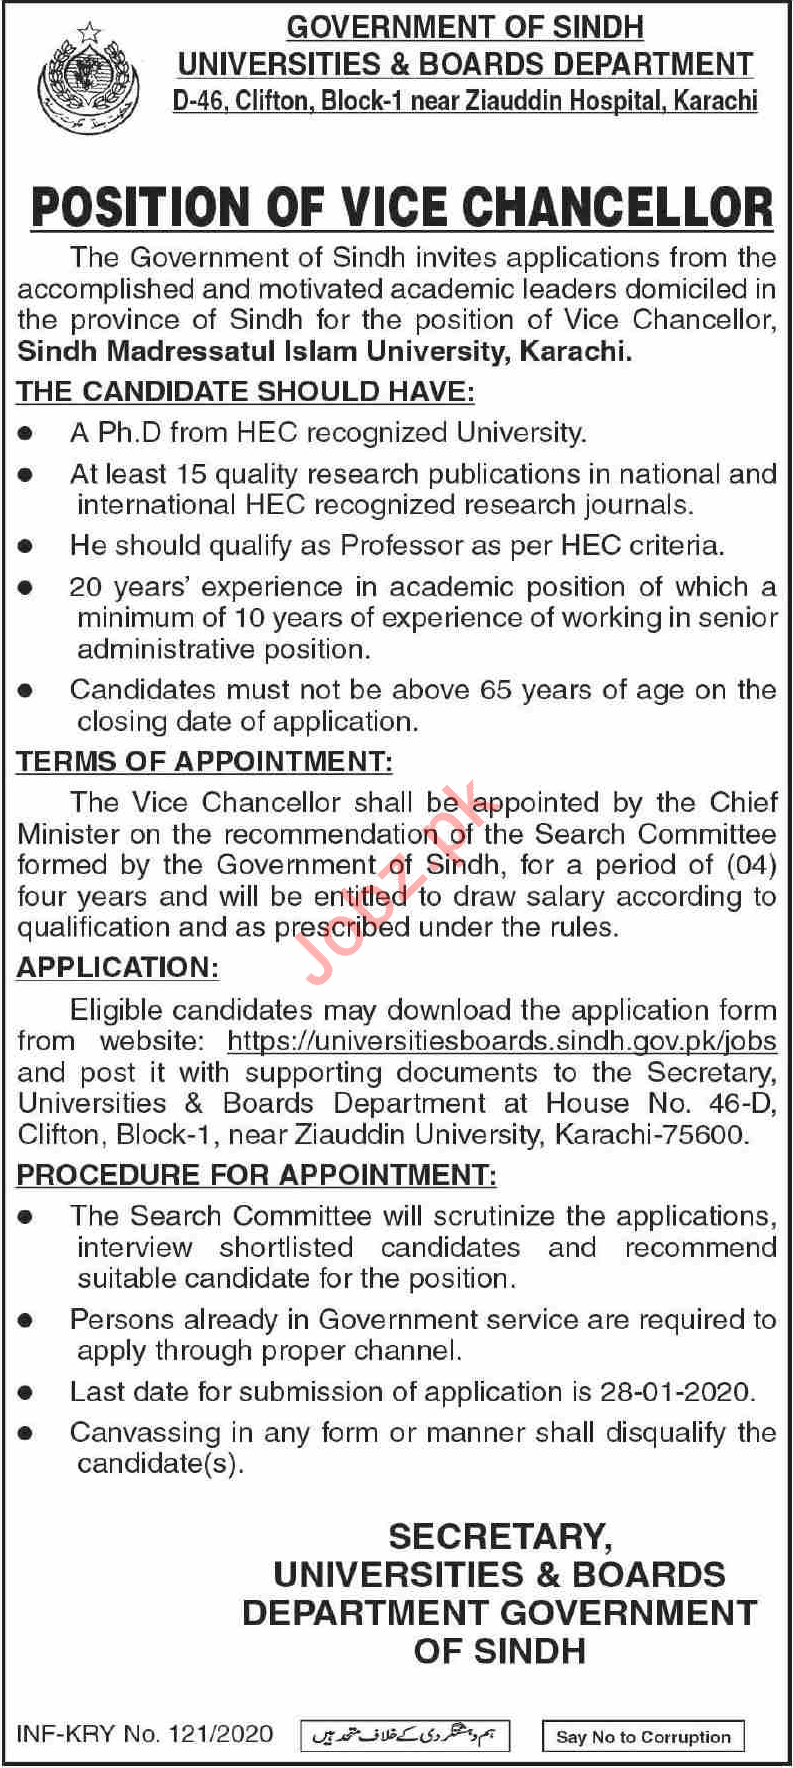 Universities & Boards Department Job For Vice Chancellor